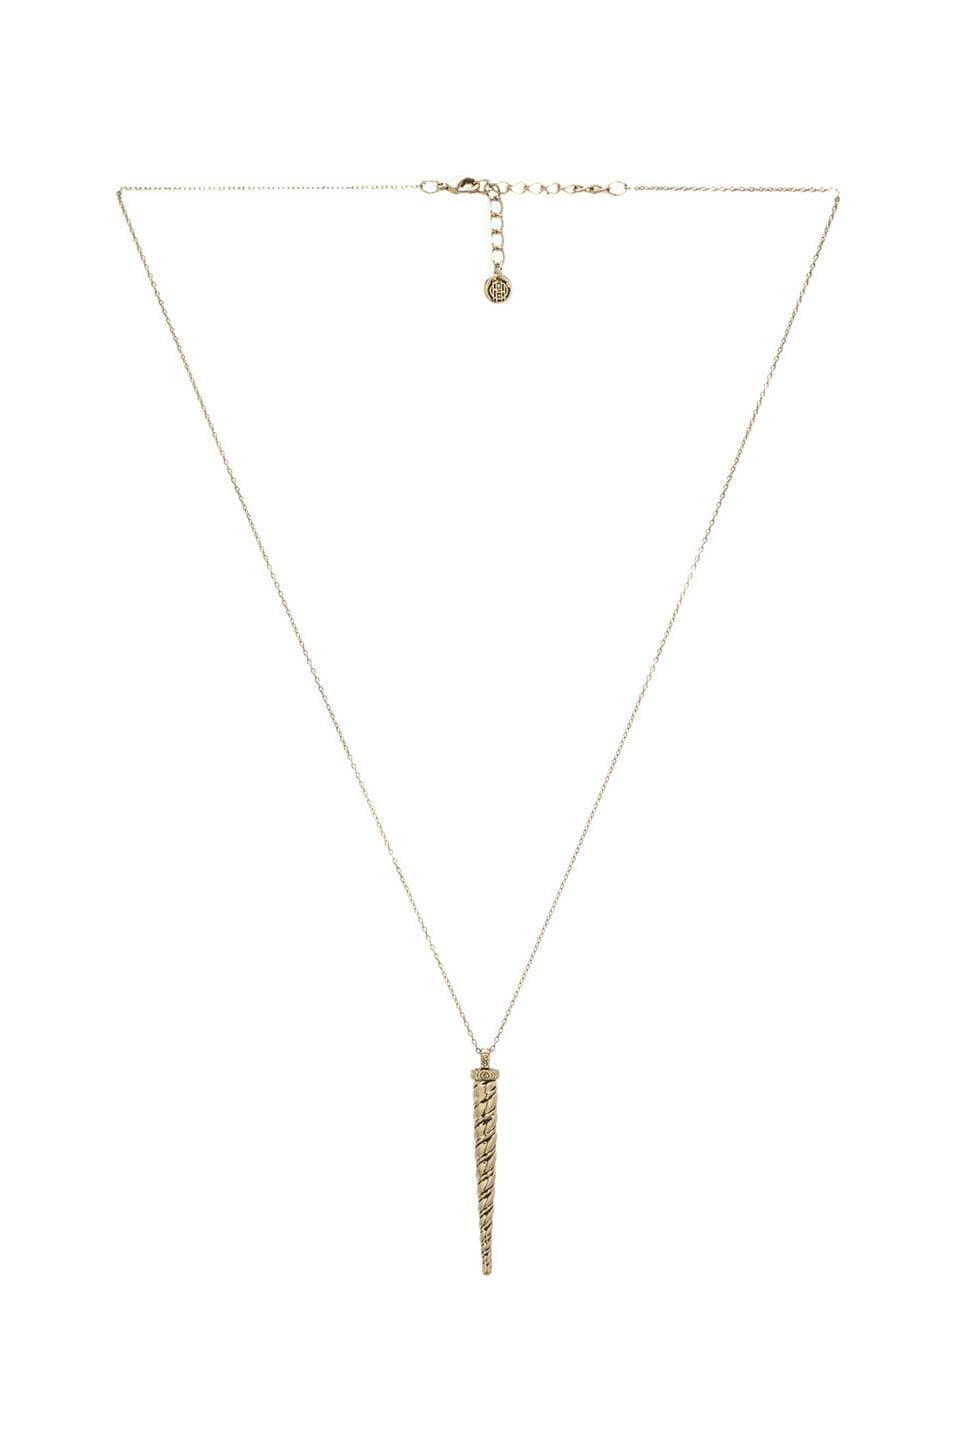 House of Harlow 1960 House of Harlow Alicorn Pendant Necklace in Gold Tone